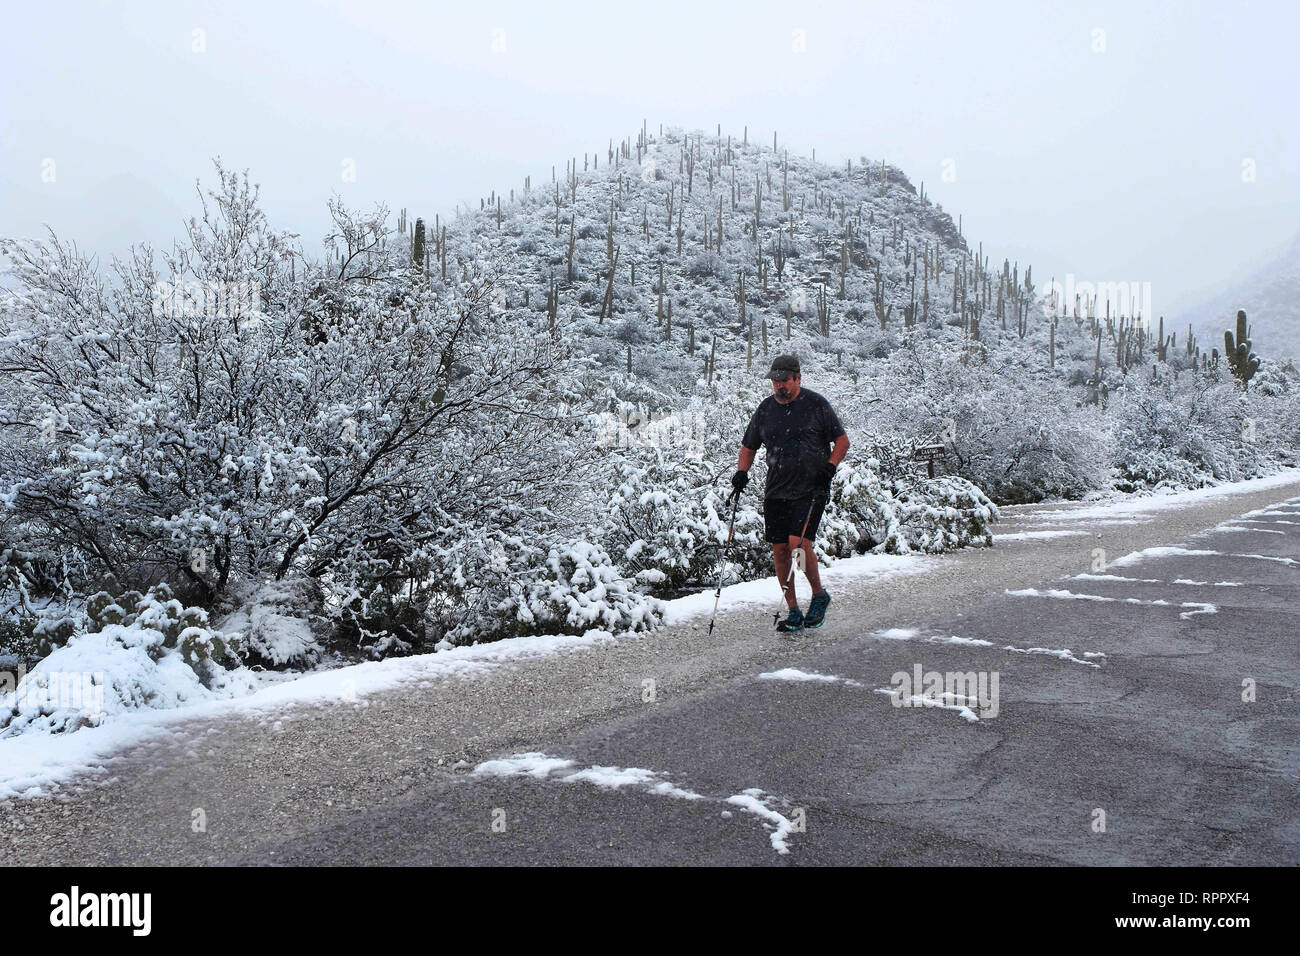 Tucson, Arizona, USA. 22nd Feb, 2019. February 22, 2019- Snowstorm at Sabino Canyon in Tucson, Arizona. A rare winter blizzard brought snow to southern Arizona. Many Tucson residents and touridts went to the National Park at Sabino Canyon to enjoy the unusual weather . Tempertures were 30 degrees colder than normal for this time of year. Credit: Christopher Brown/ZUMA Wire/Alamy Live News Stock Photo